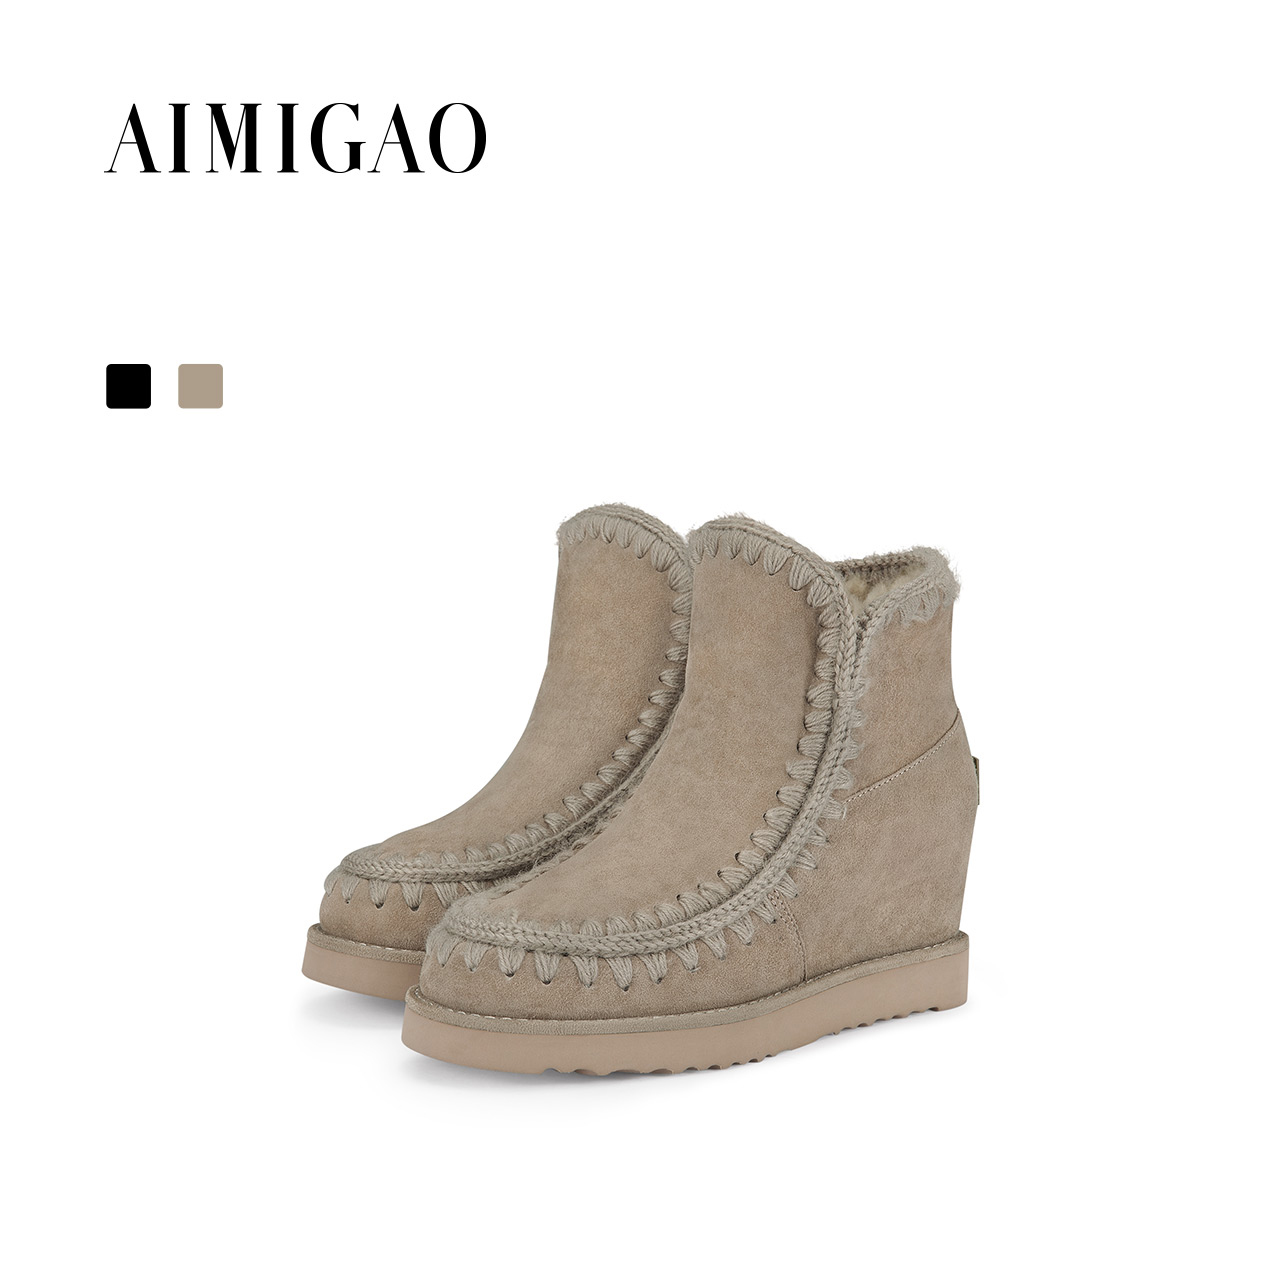 AIMIGAO Solid Winter Warm Short Plush Snow Boots Women Sheep Suede Leather Flat Platform Ankle Boots Invisible Height Increased